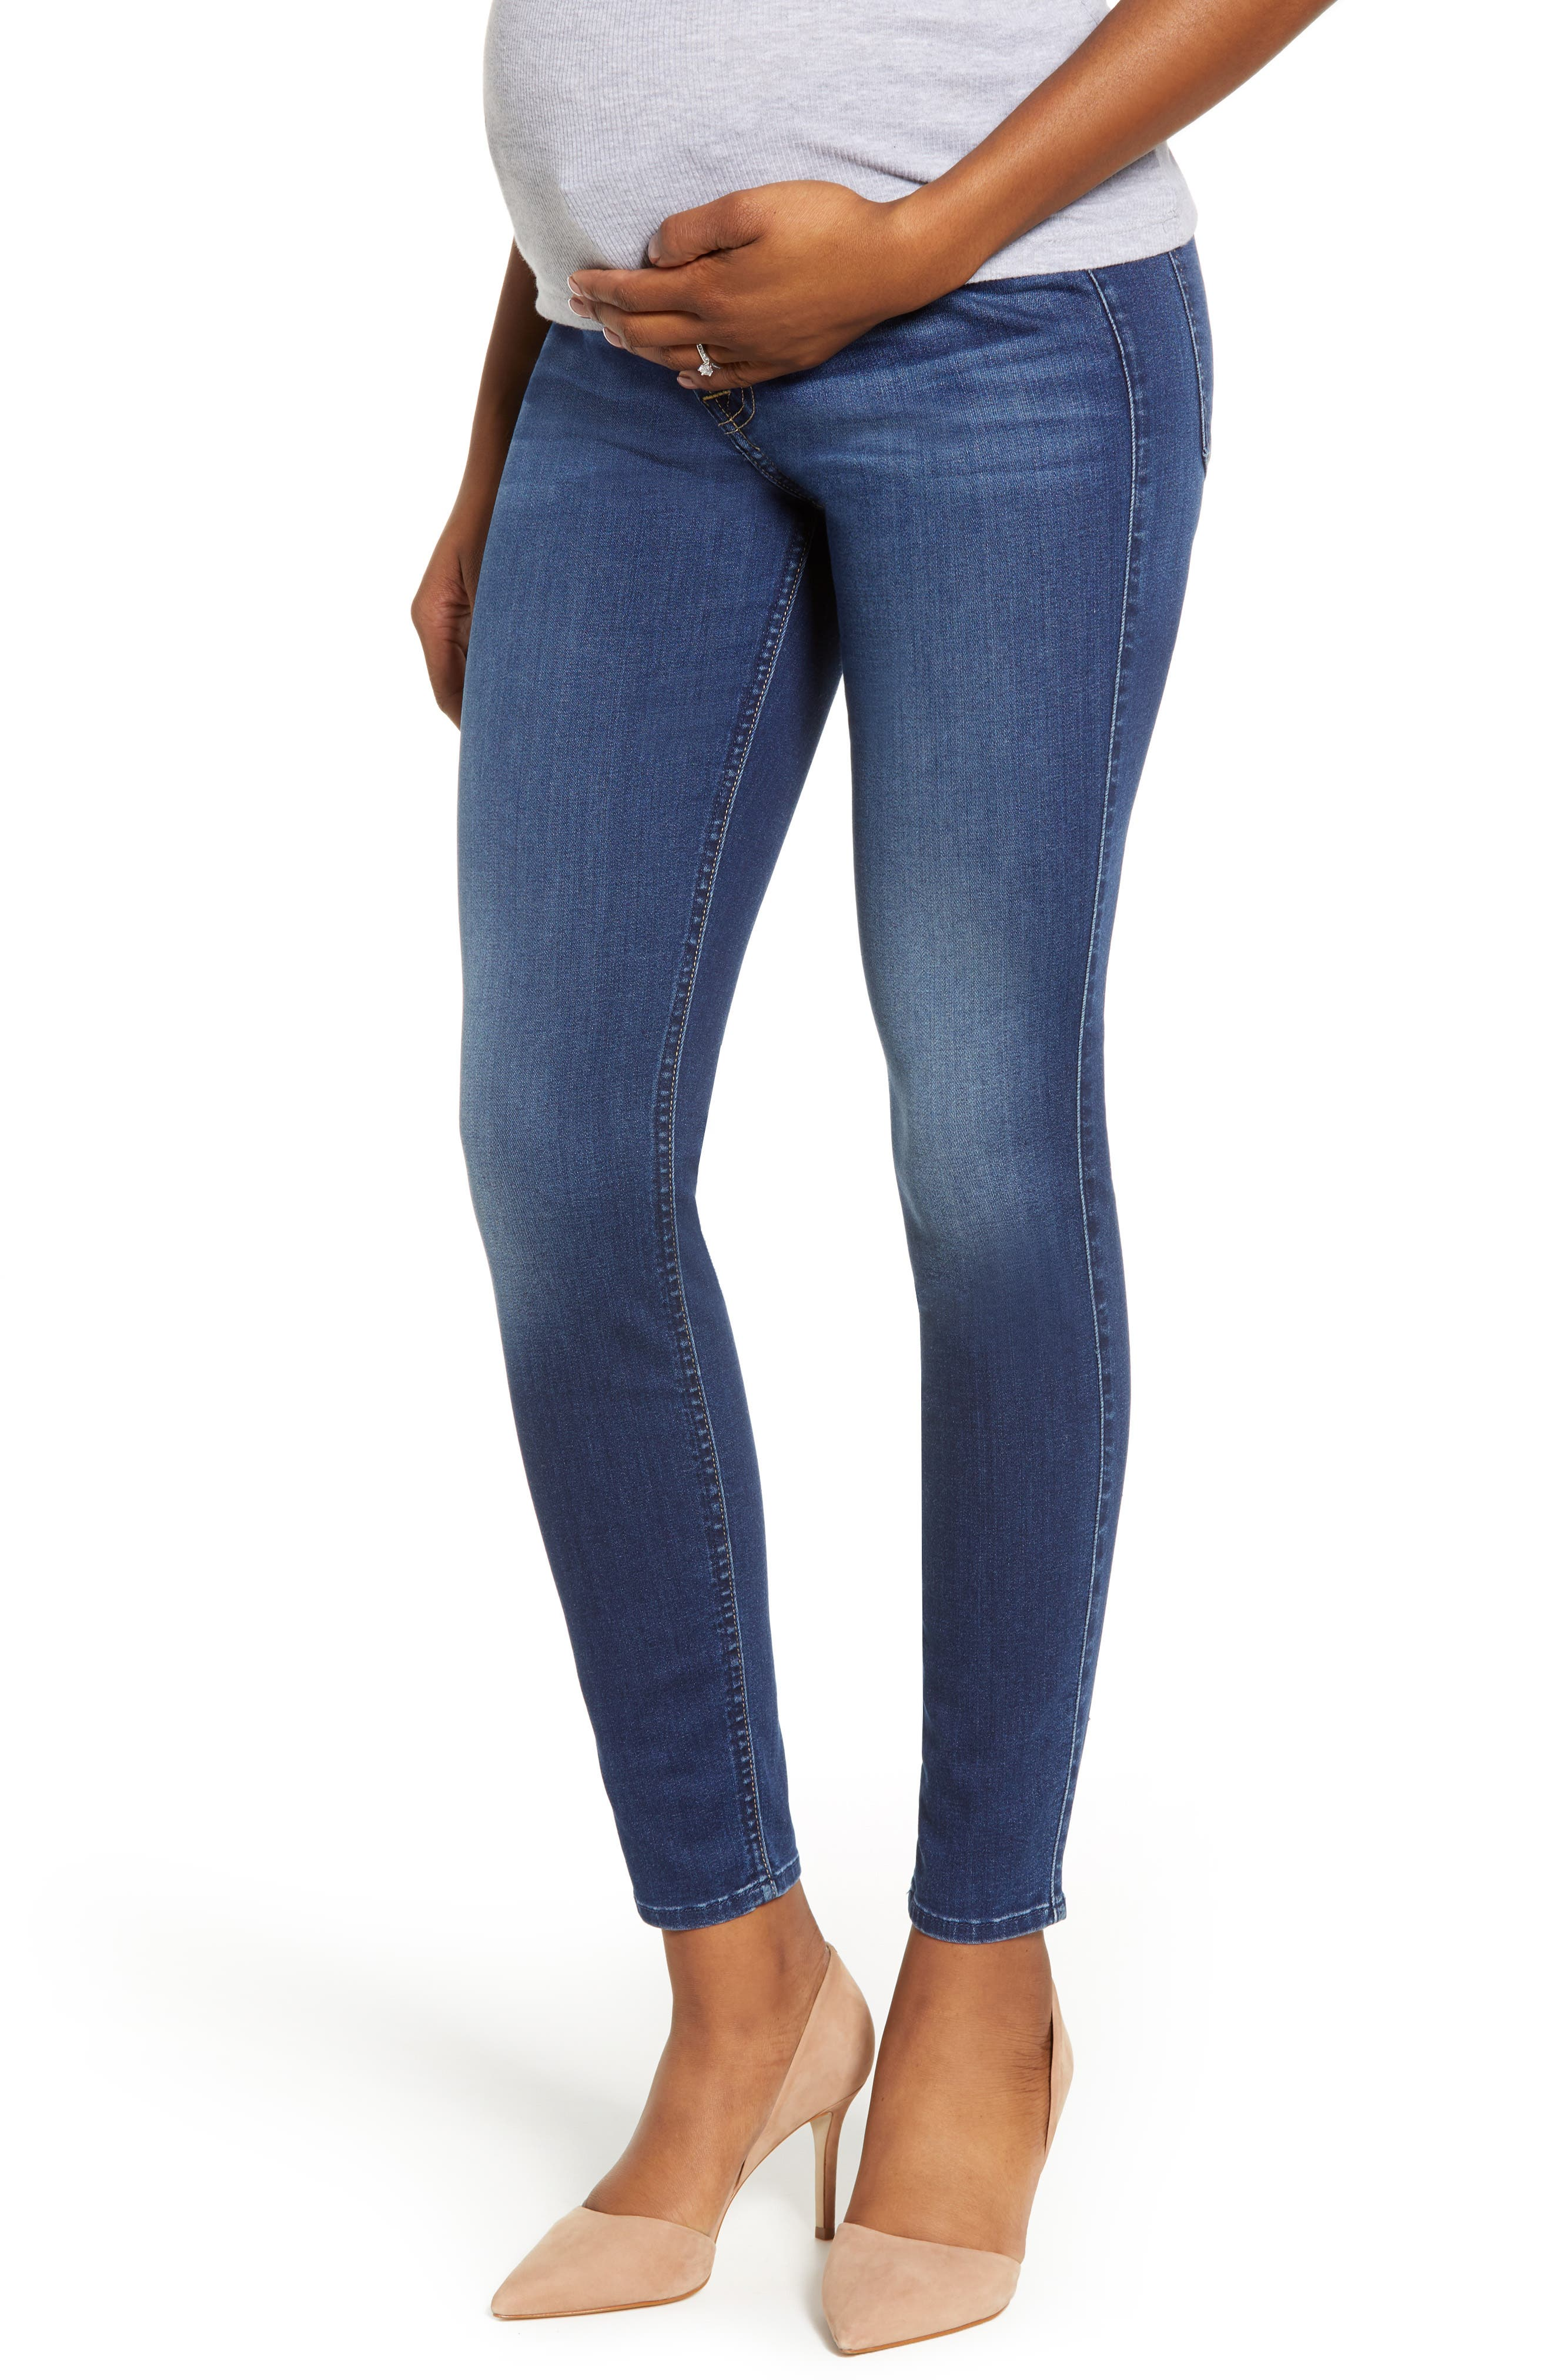 Women's 7 For All Mankind B(Air) Ankle Skinny Maternity Jeans